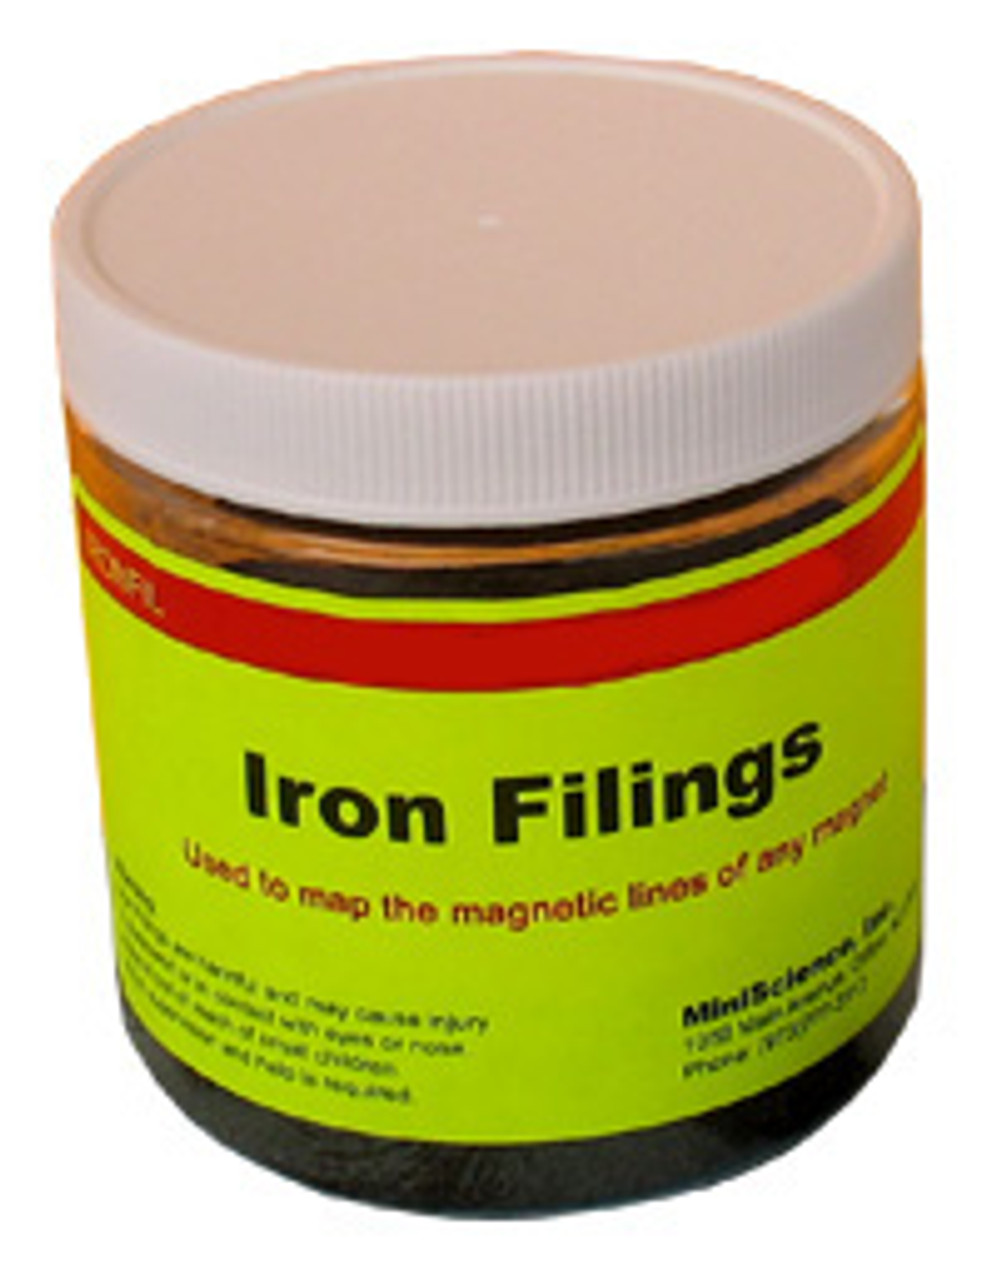 Iron filing for magnet and electromagnet science experiments